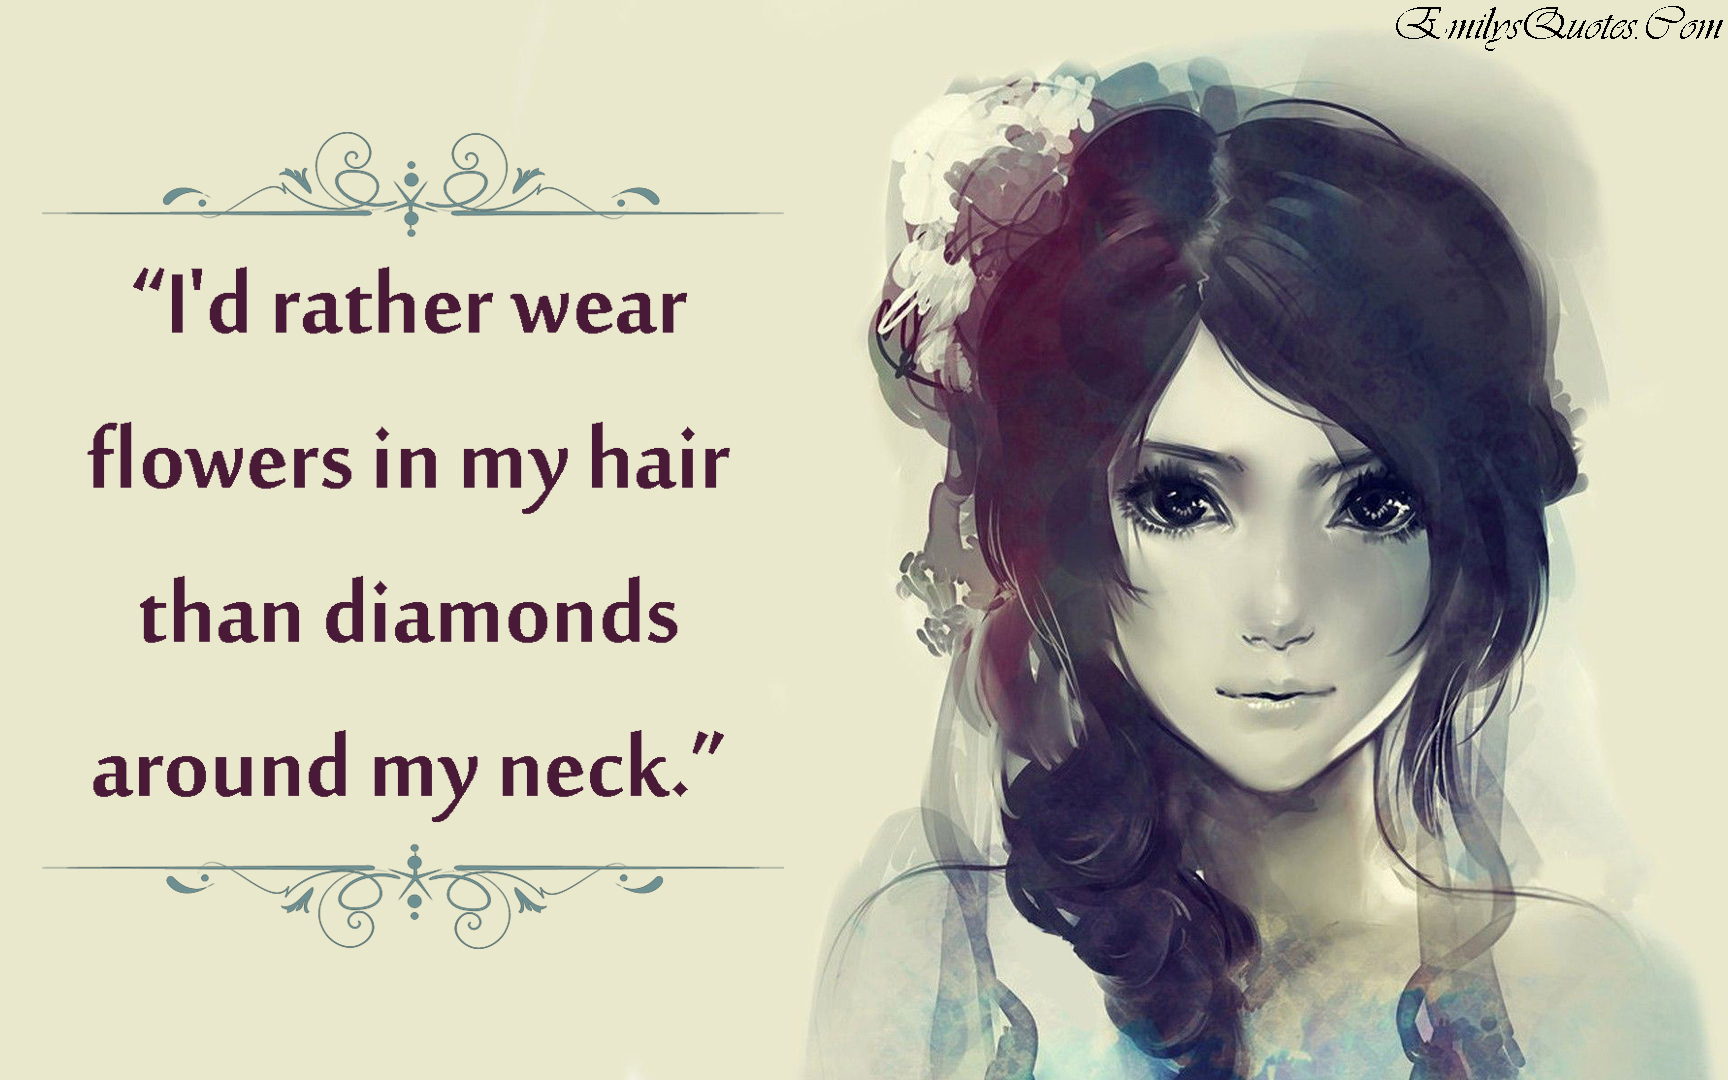 Id Rather Wear Flowers In My Hair Than Diamonds Around My Neck